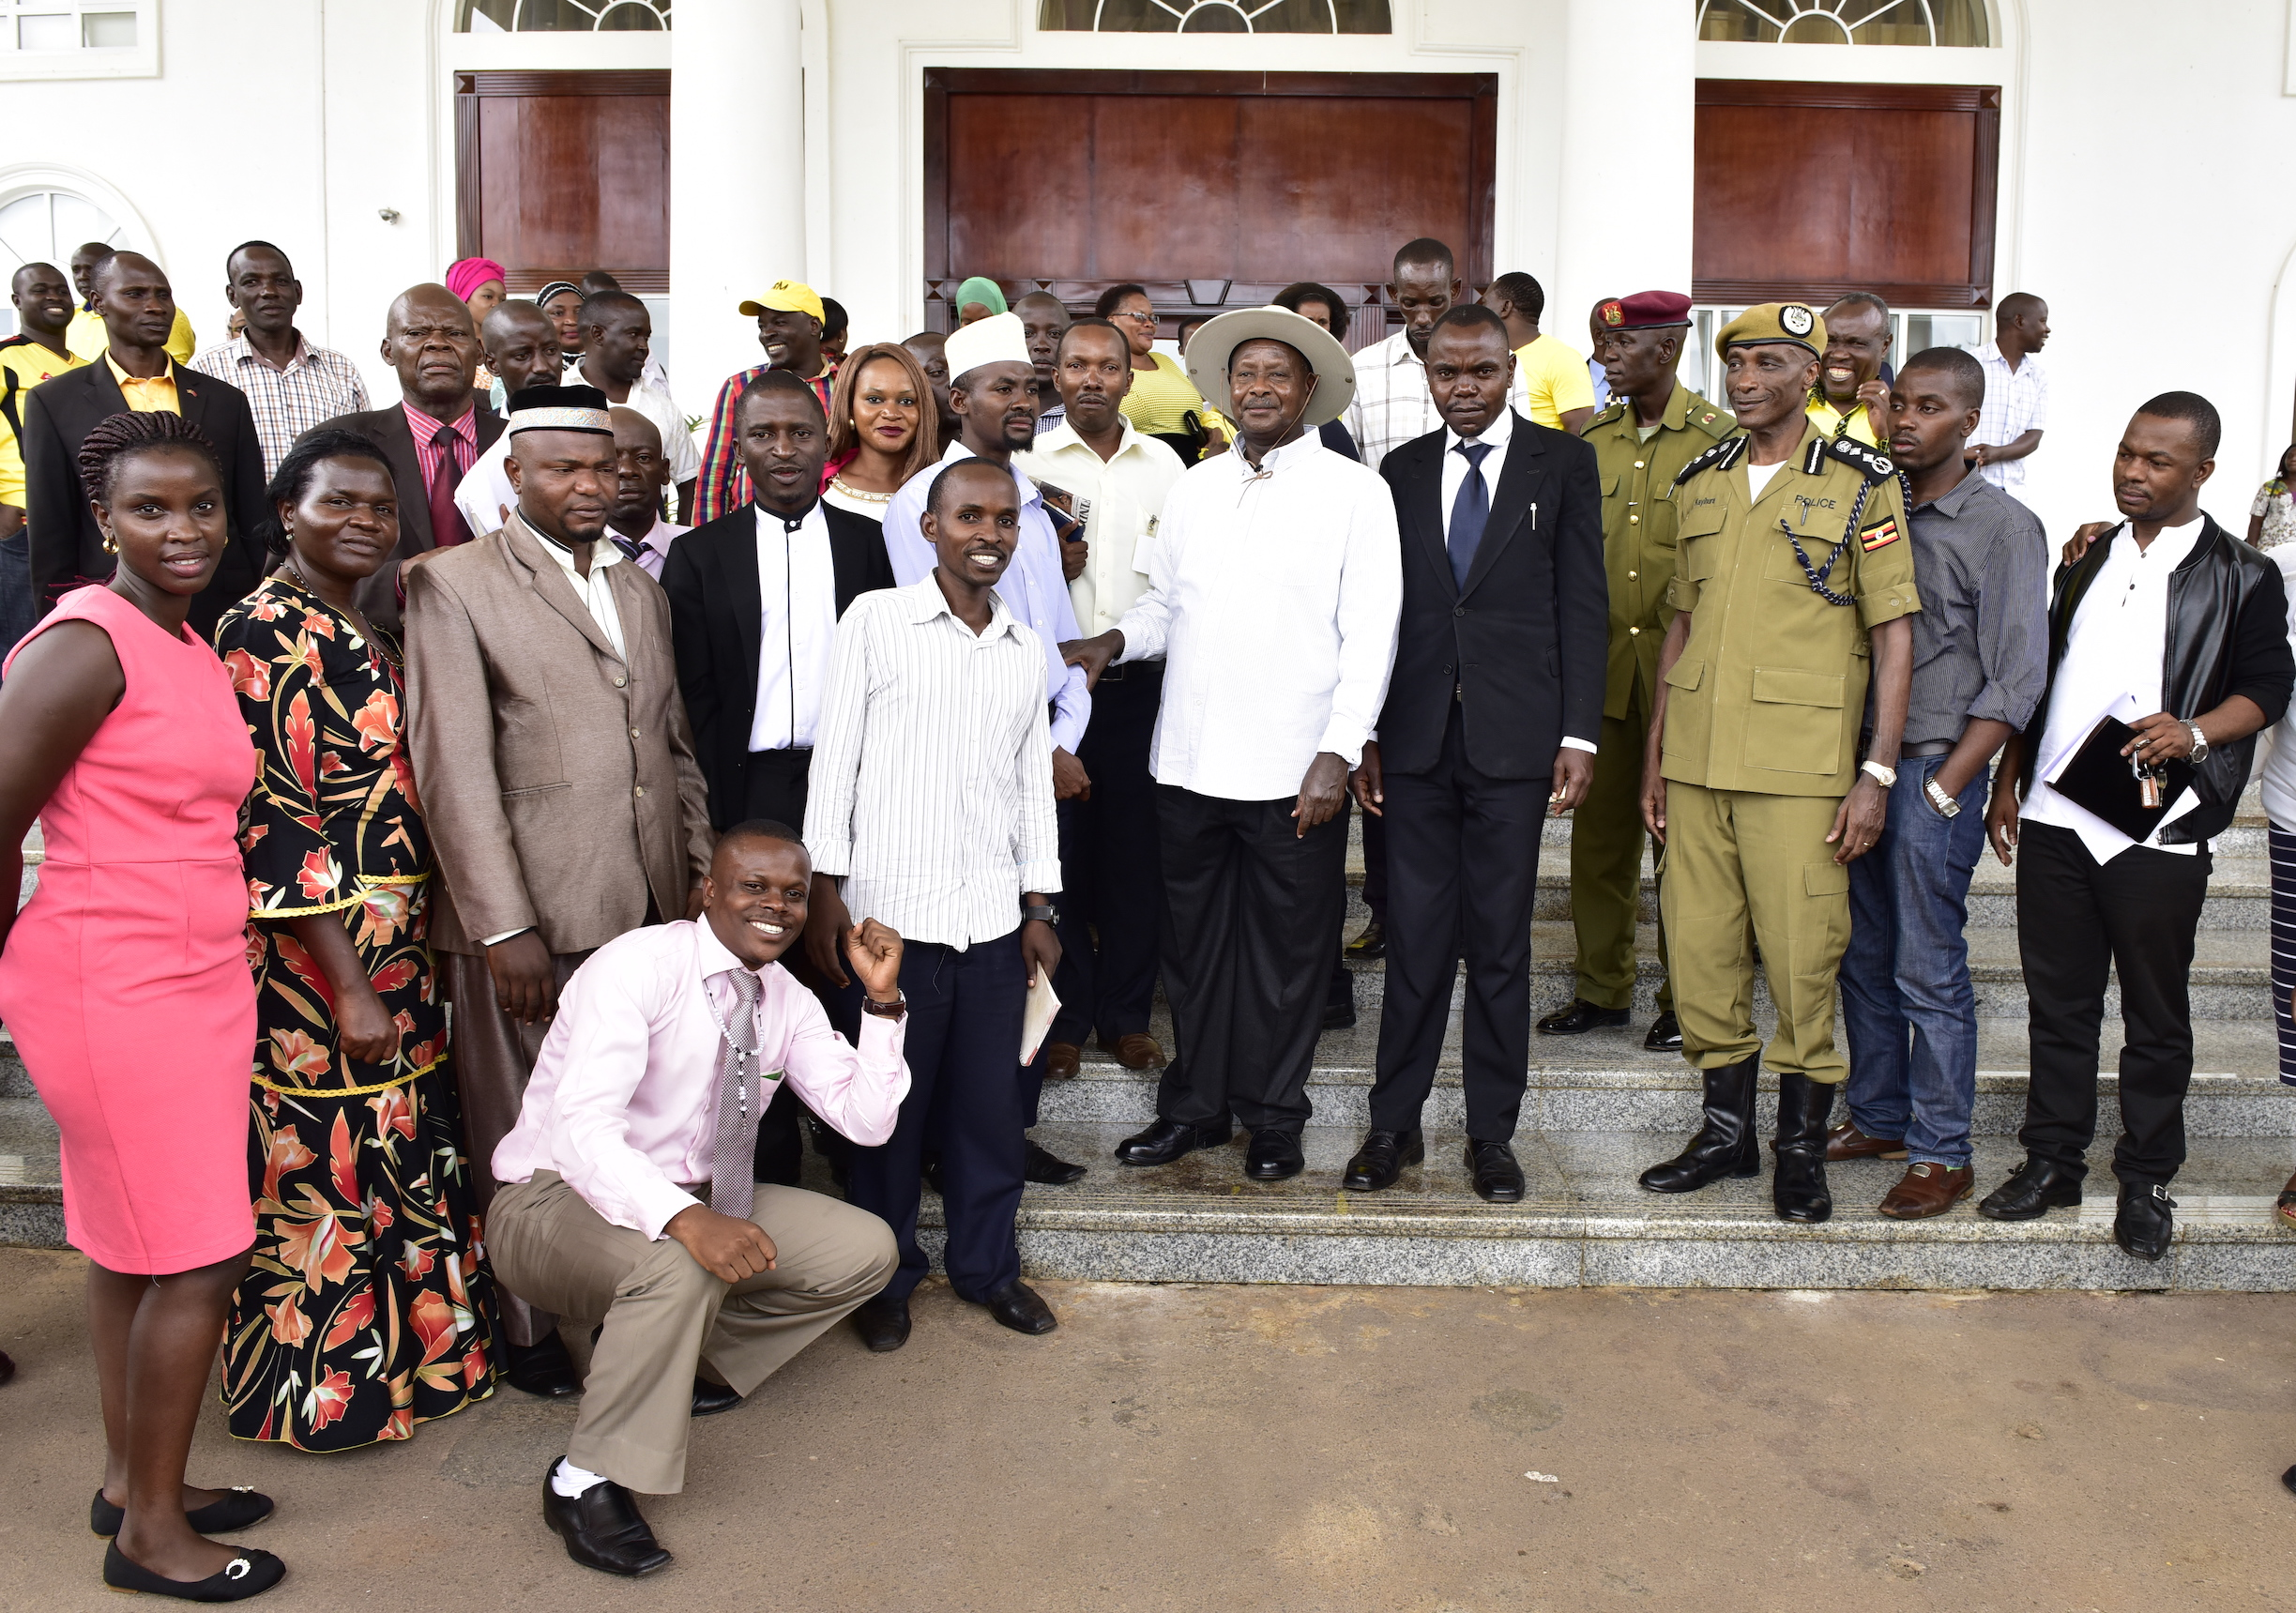 President Yoweri Museveni posses for a photo with a group of KCCA Councilors from the five divisions of Kampala who met him at State House Entebbe yesterday April 24. PPU Photo.